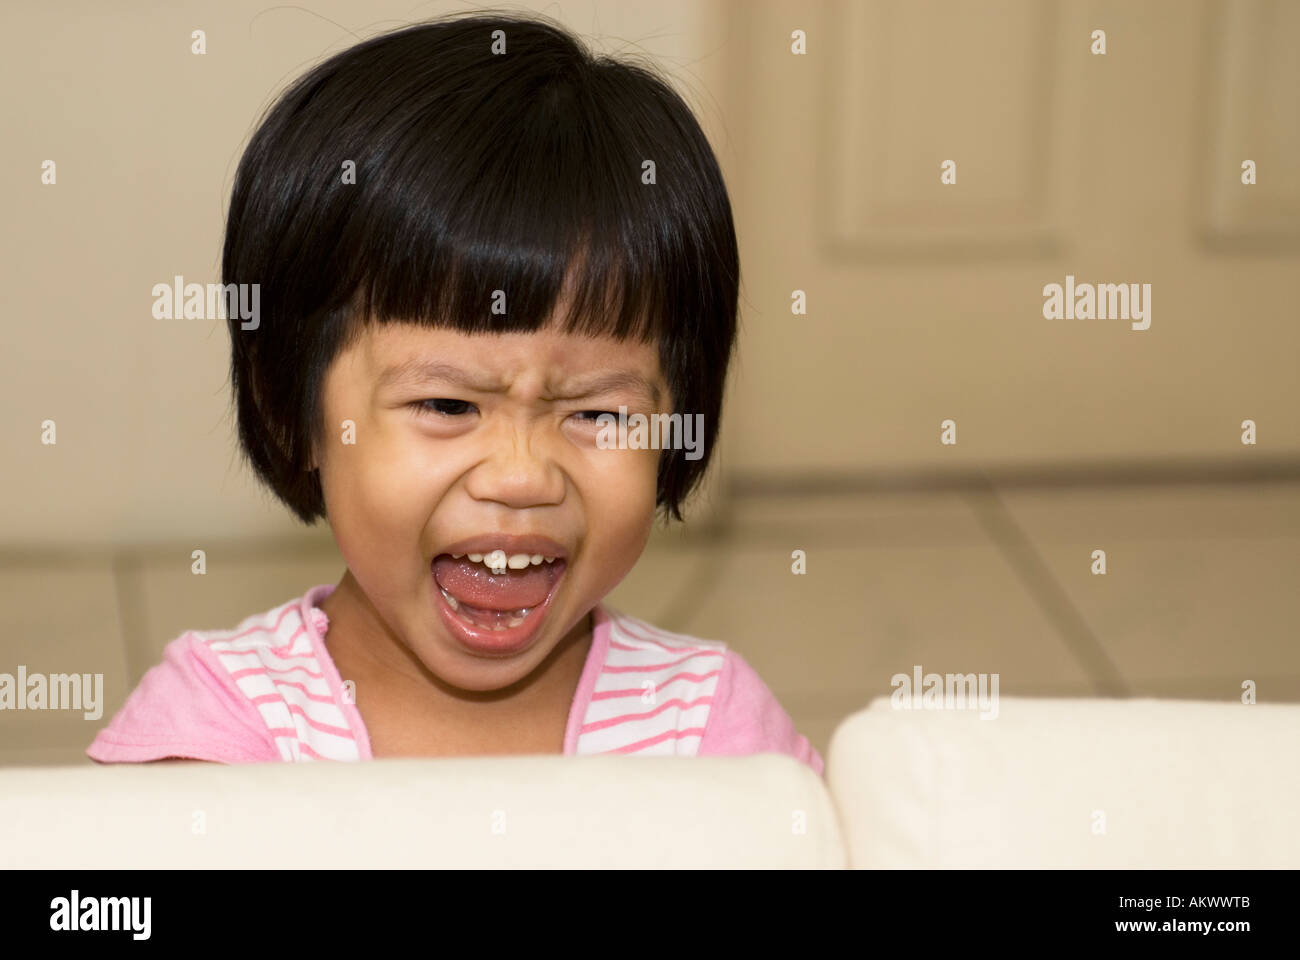 Portrait Of A Young Asian Girl Screaming Taiwan China - Stock Image